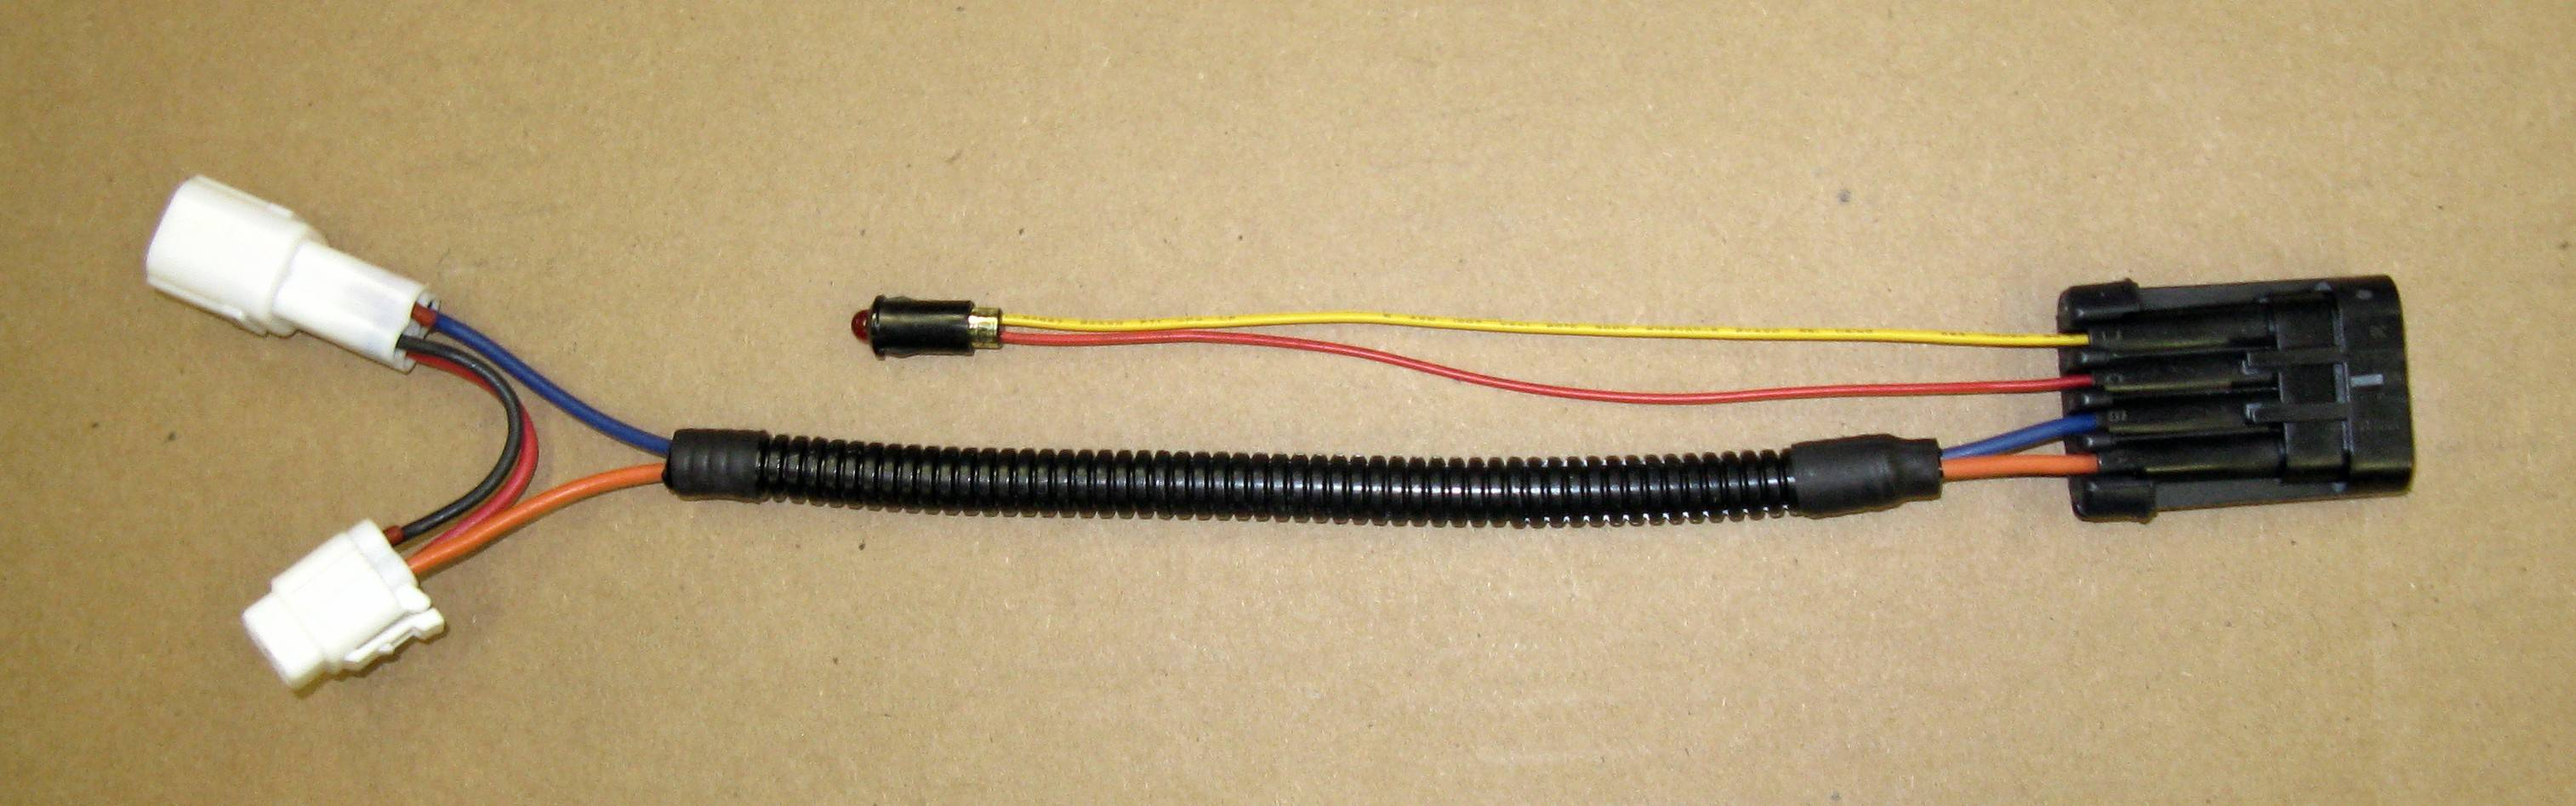 Assembled upper harness assembly